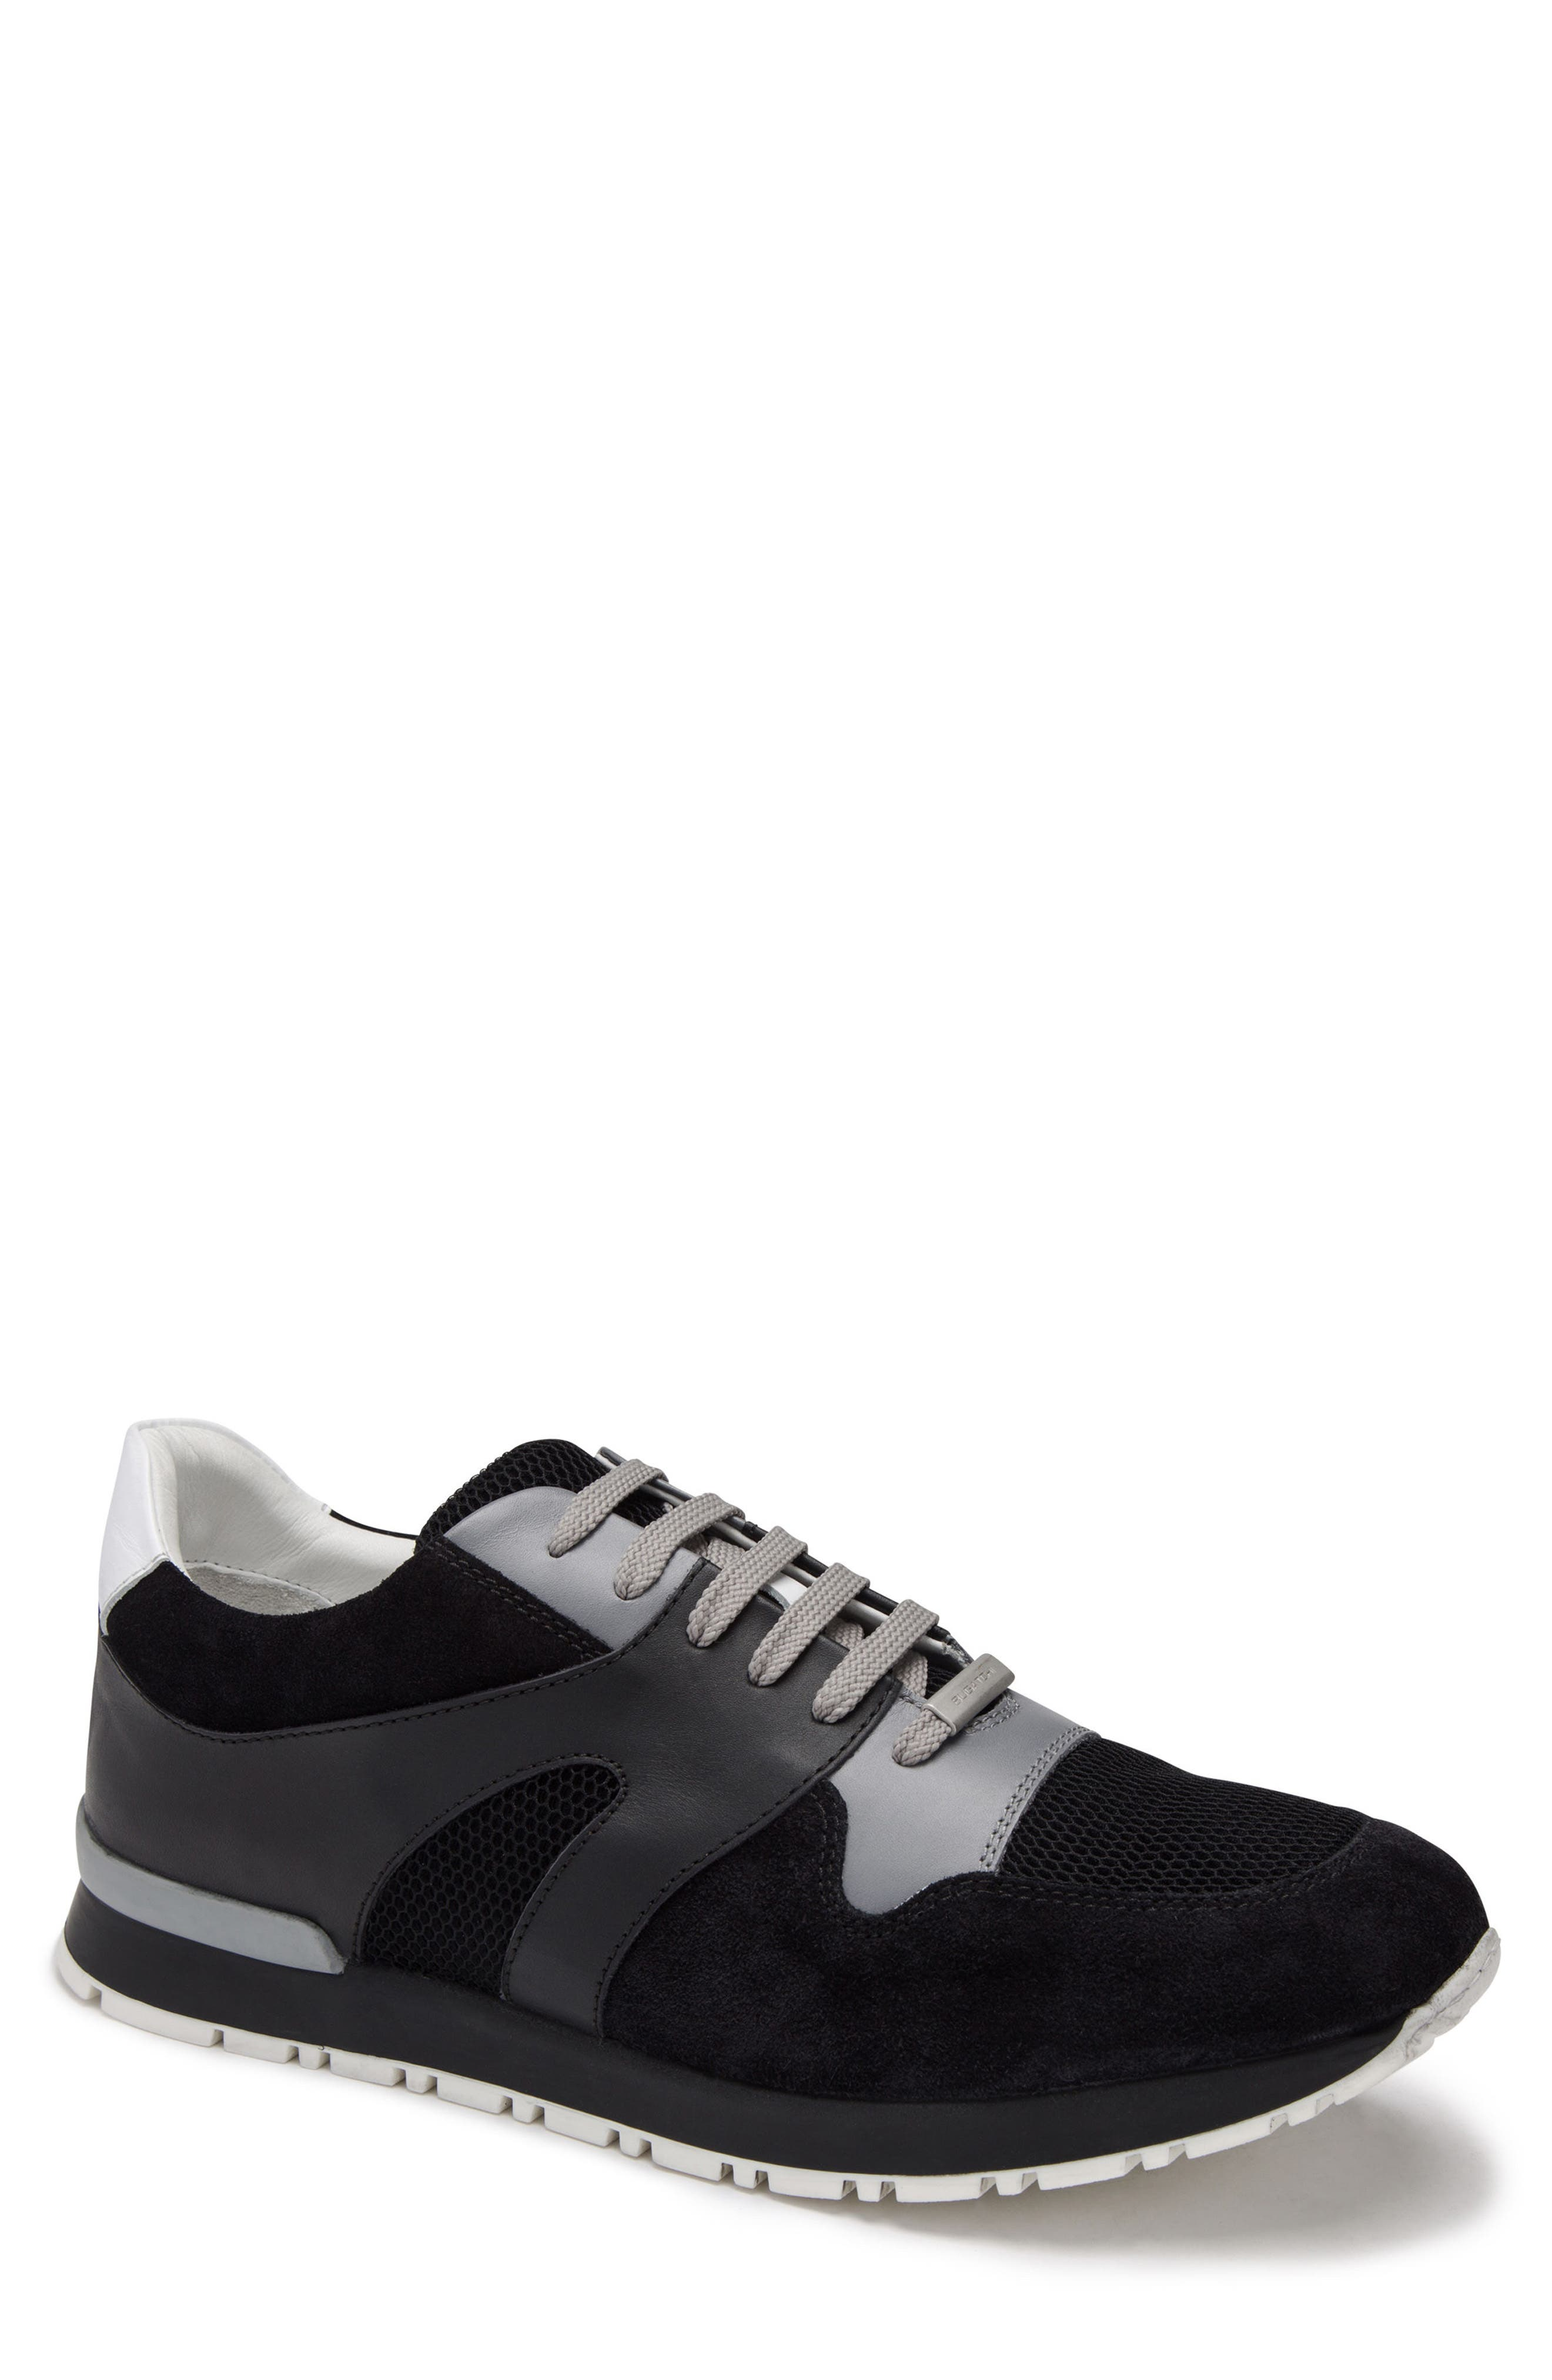 Portofino Sneaker,                         Main,                         color, NERO